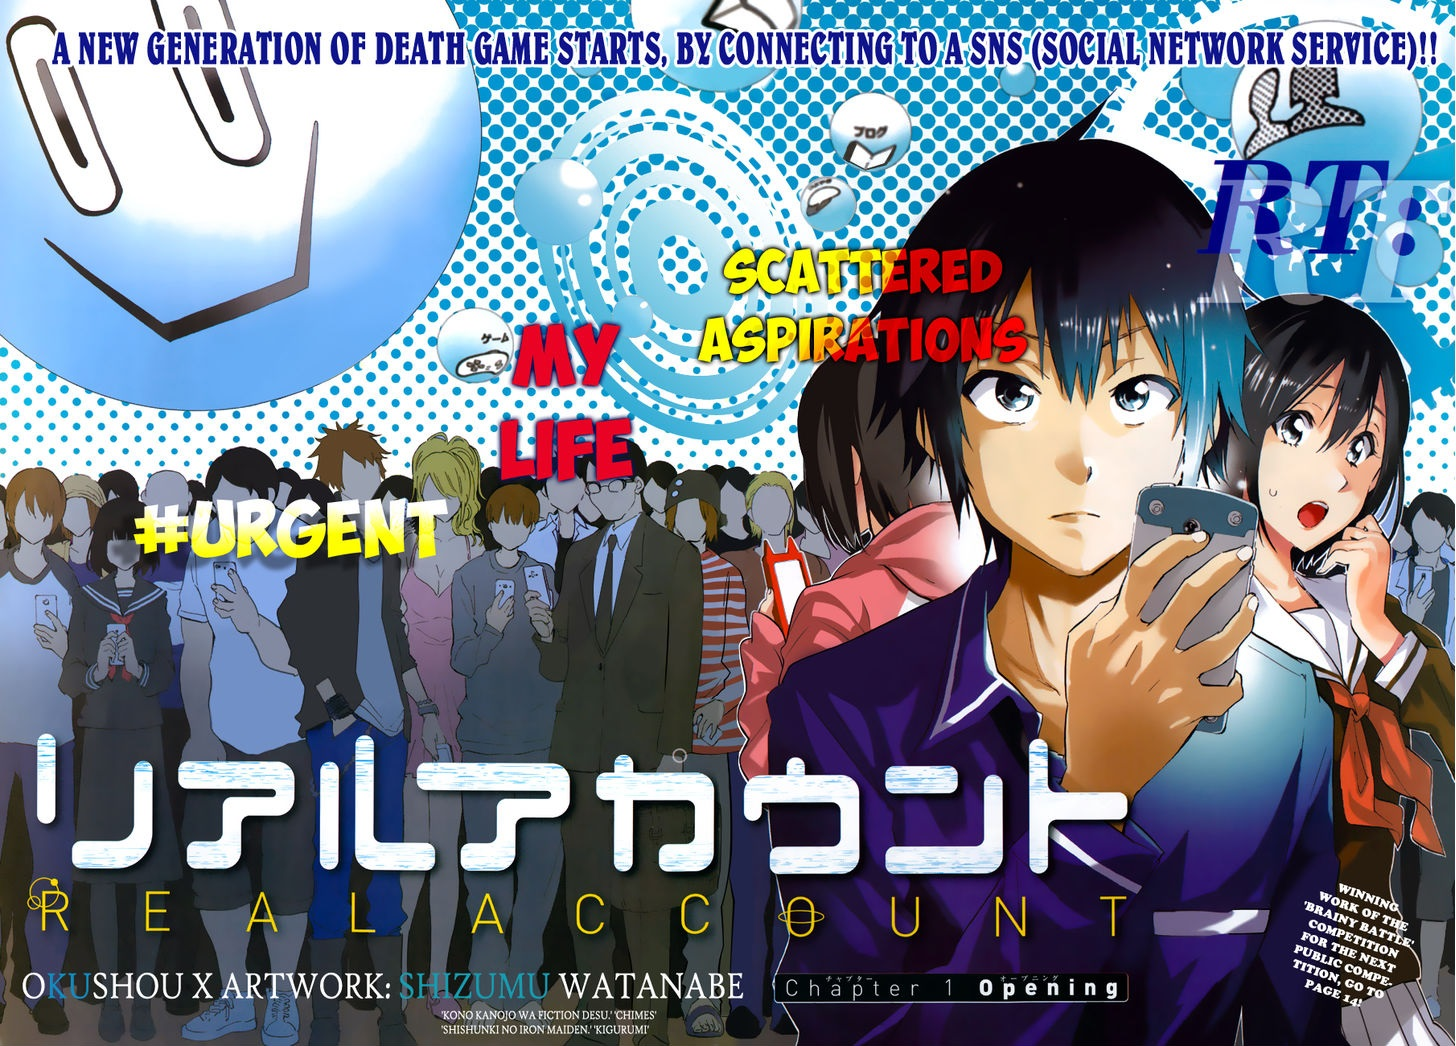 Good Anime Wallpaper Real Account Manga About A Survival Game Where People In